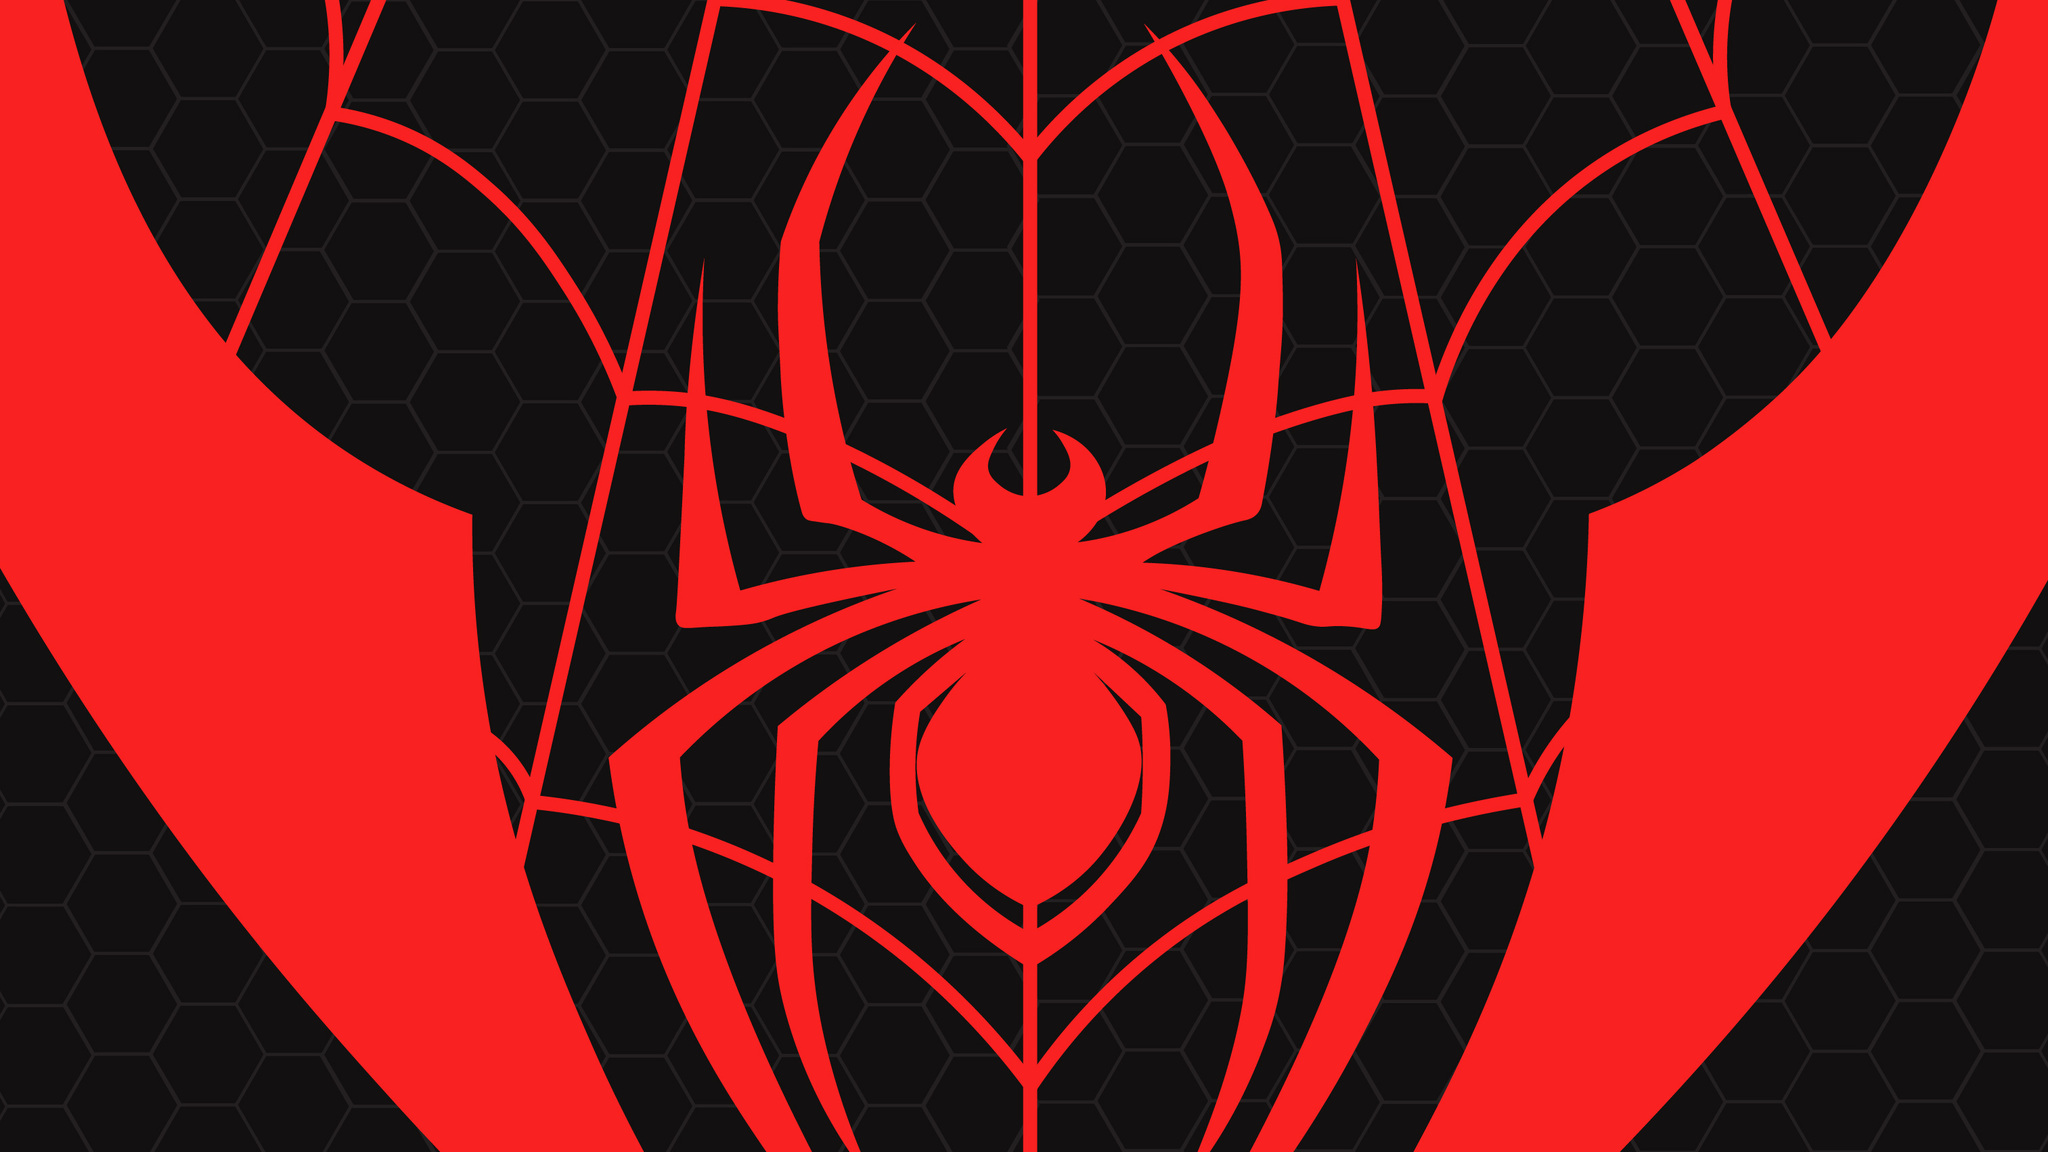 2048x1152 Miles Morales Spiderman Logo 2048x1152 Resolution